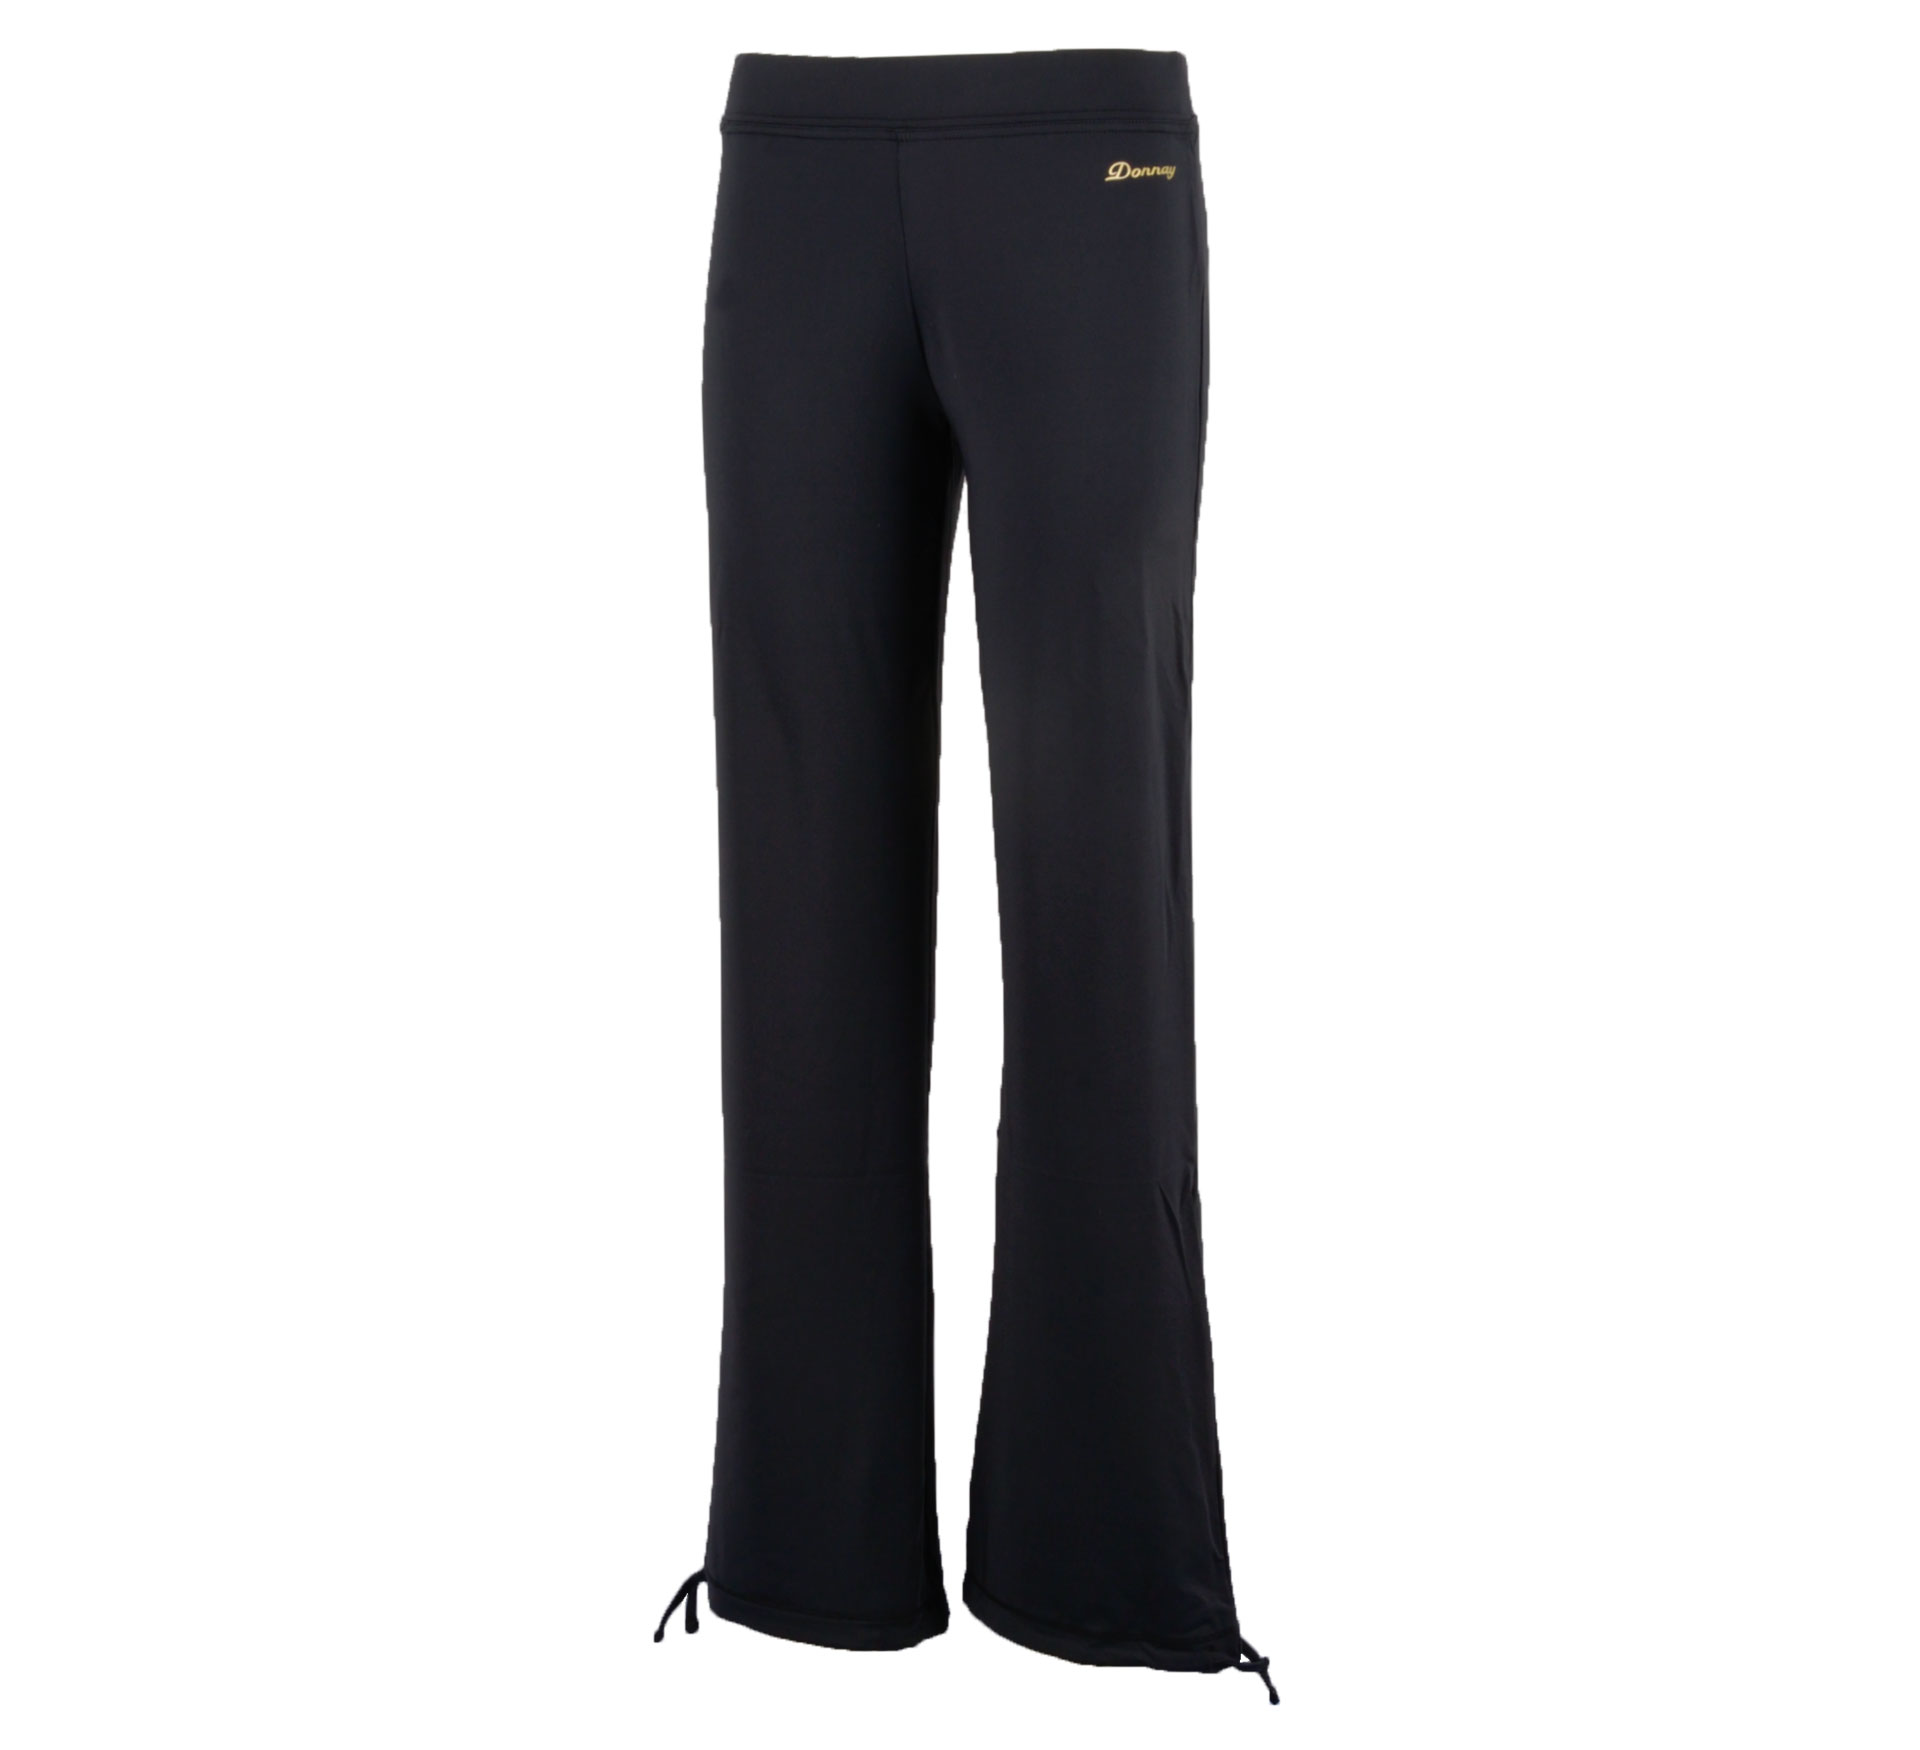 Donnay Jazz- / Fitnessbroek Dames zwart